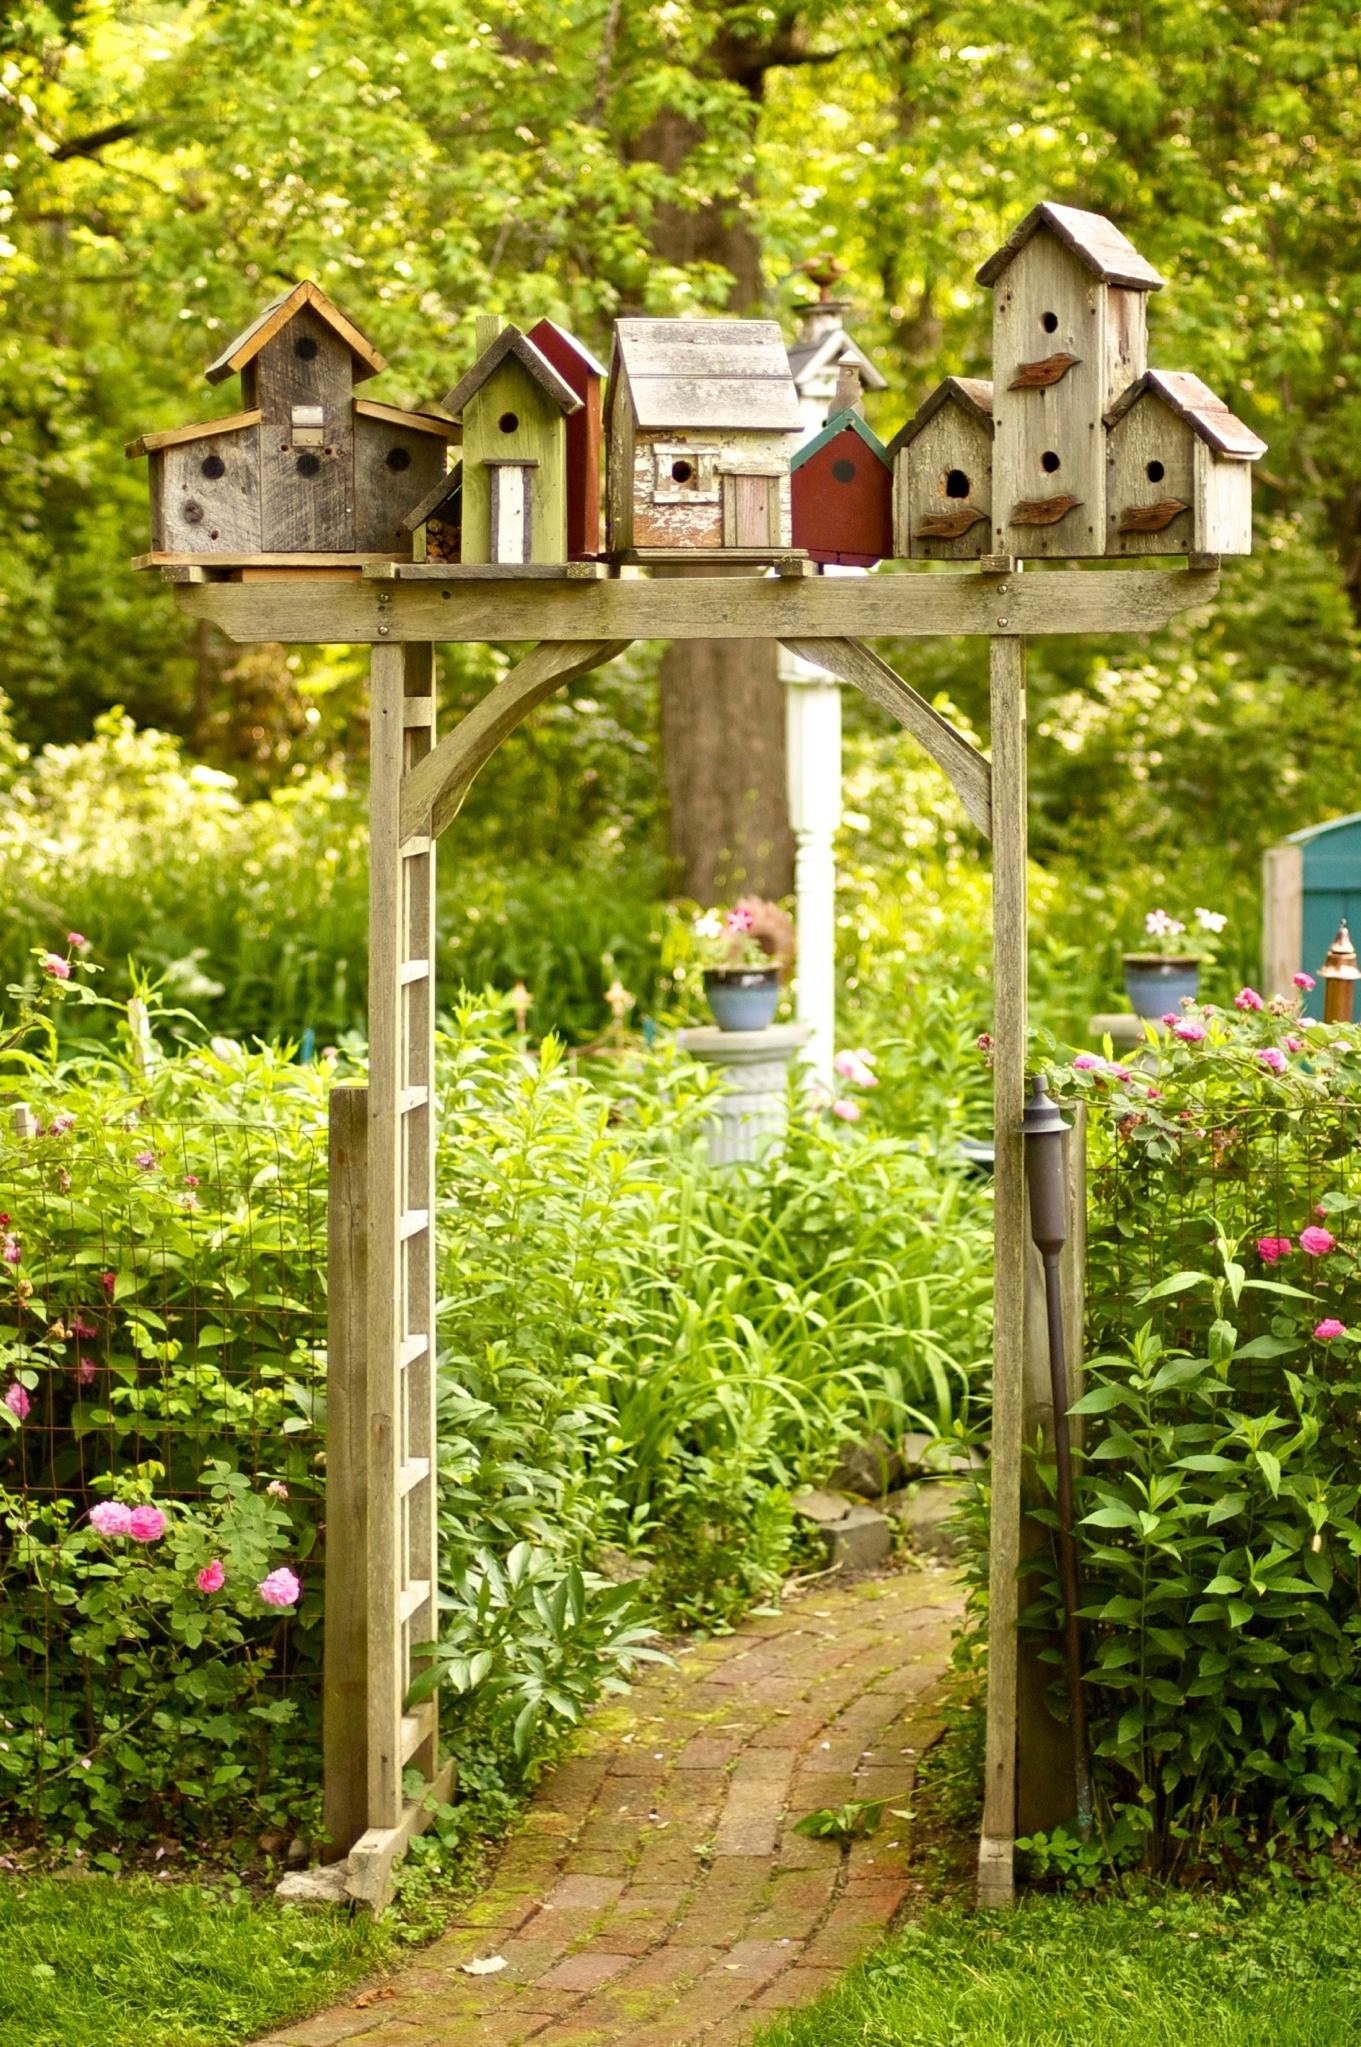 Birdhouse village garden arbor! | Wandregal | Pinterest | Jardins ...